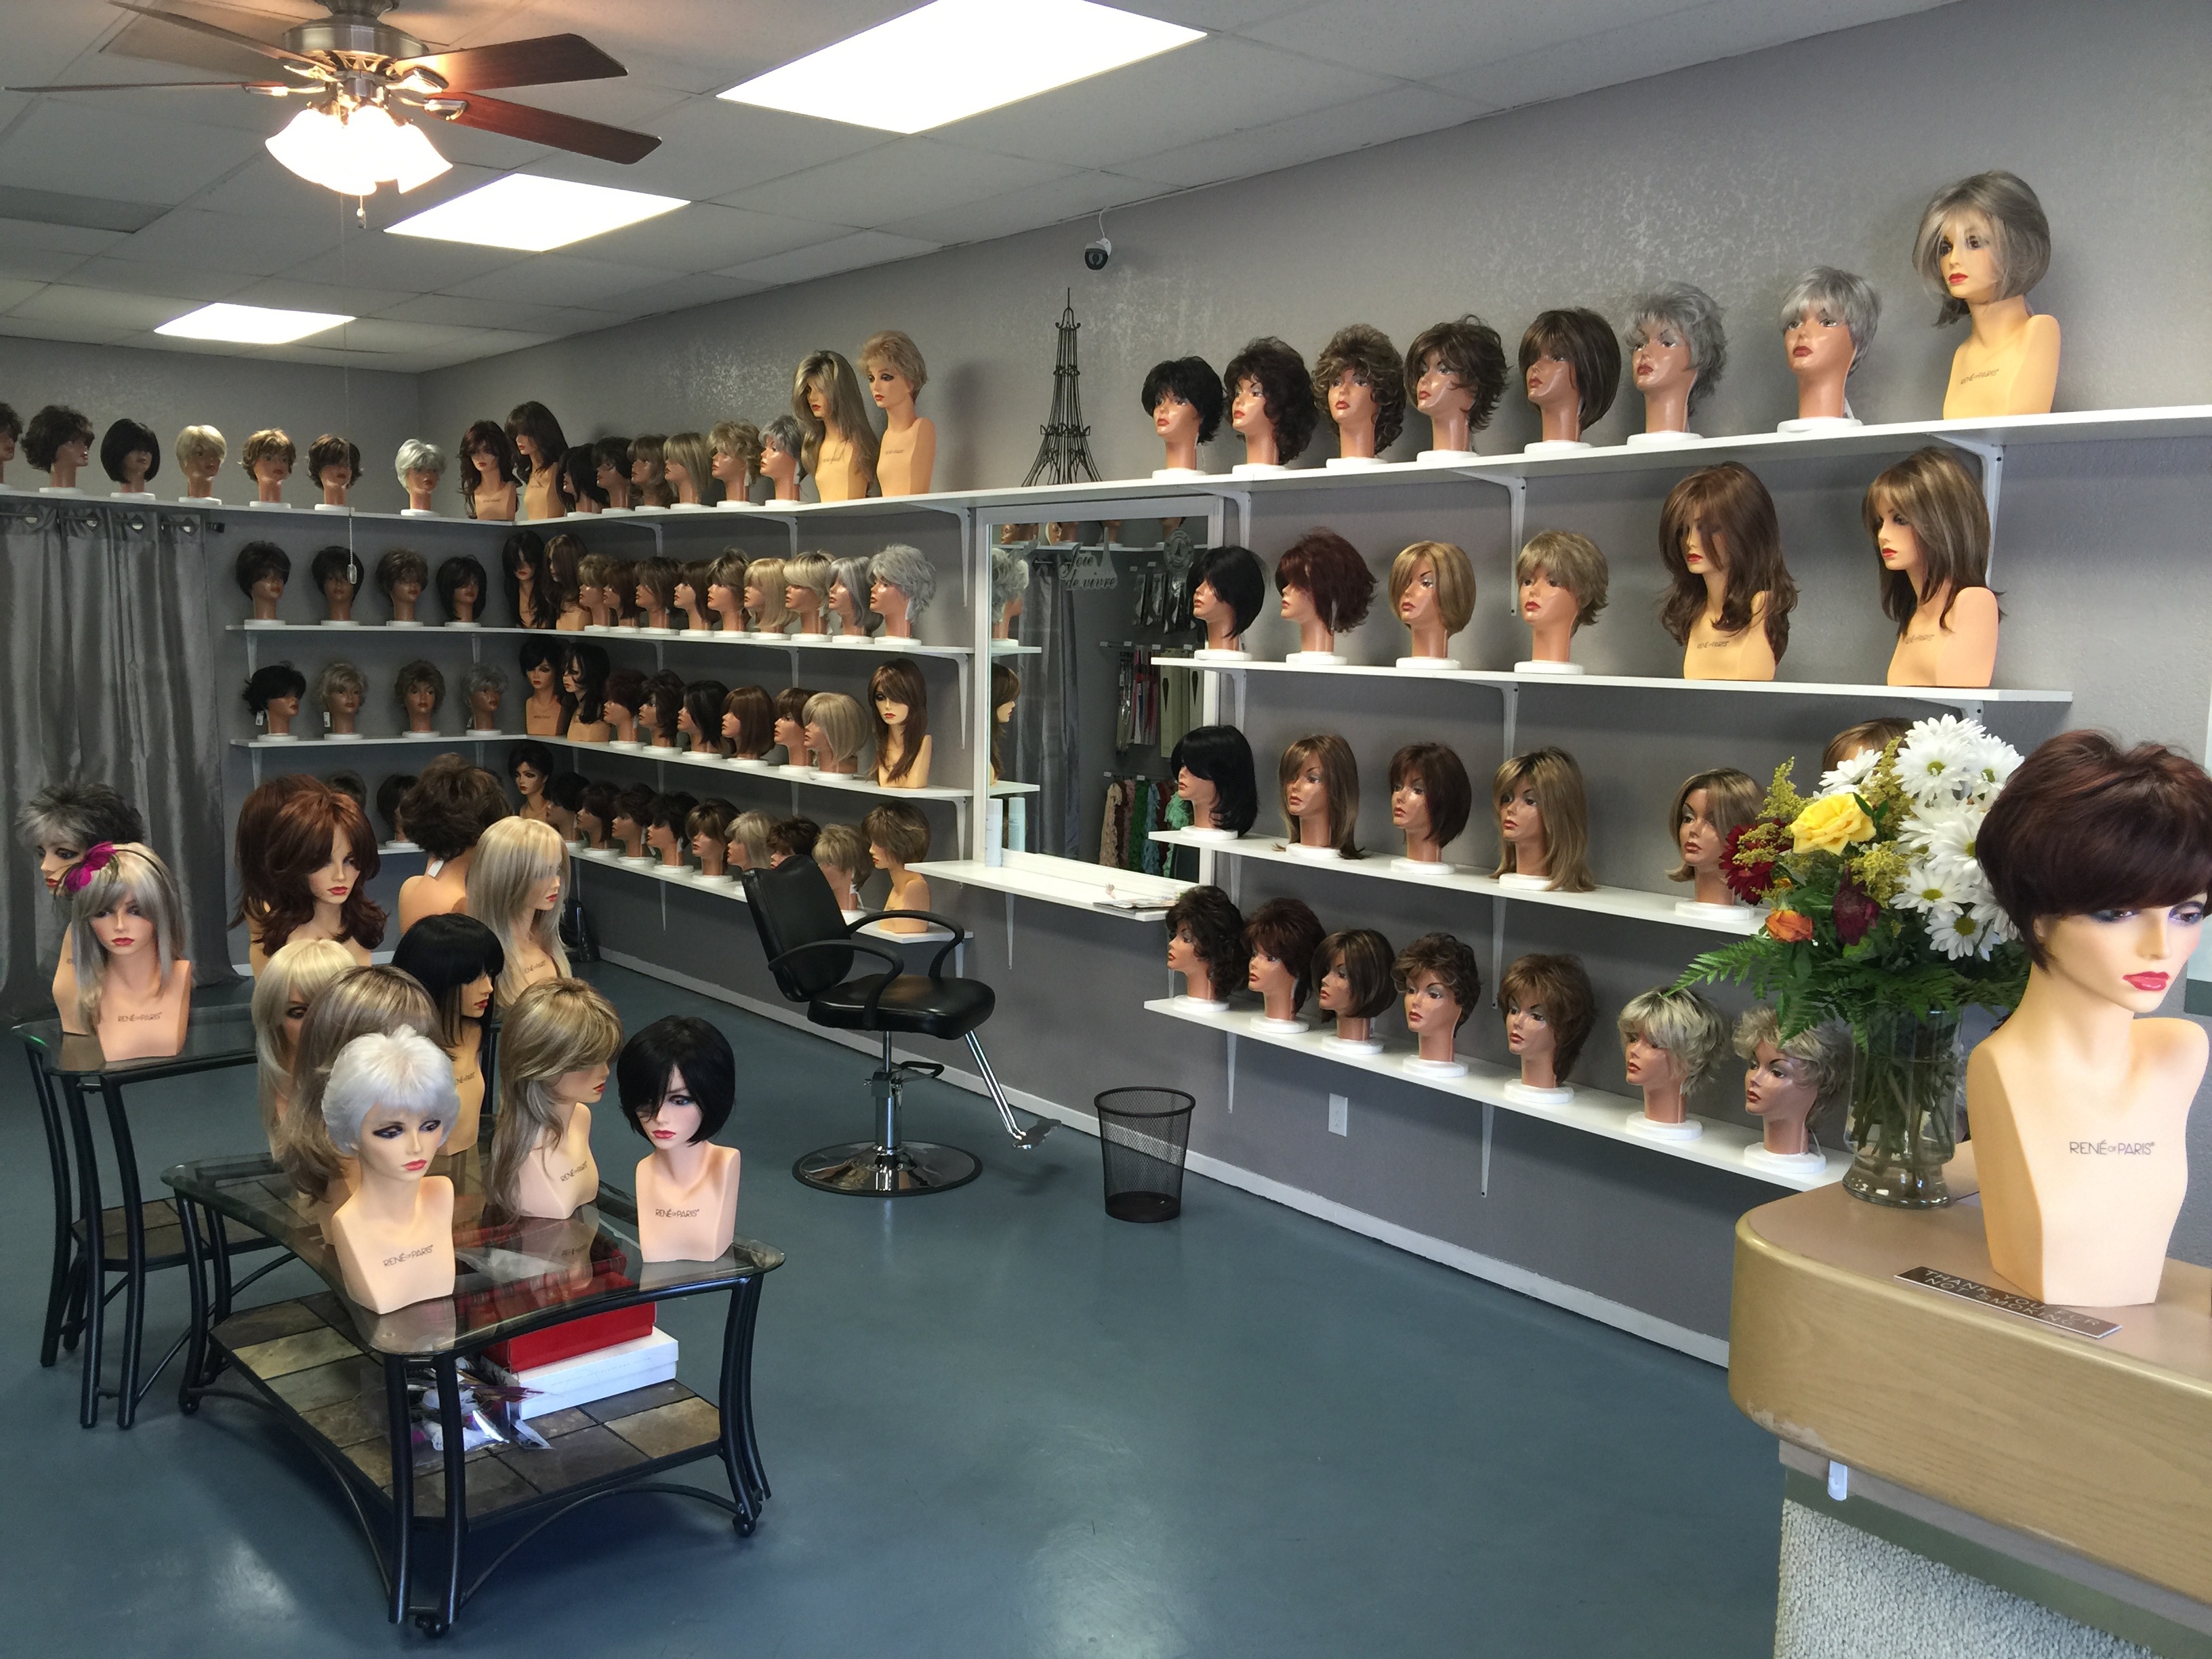 Paris wigs and extensions in fresno ca 93711 for Jewelry repair fresno ca